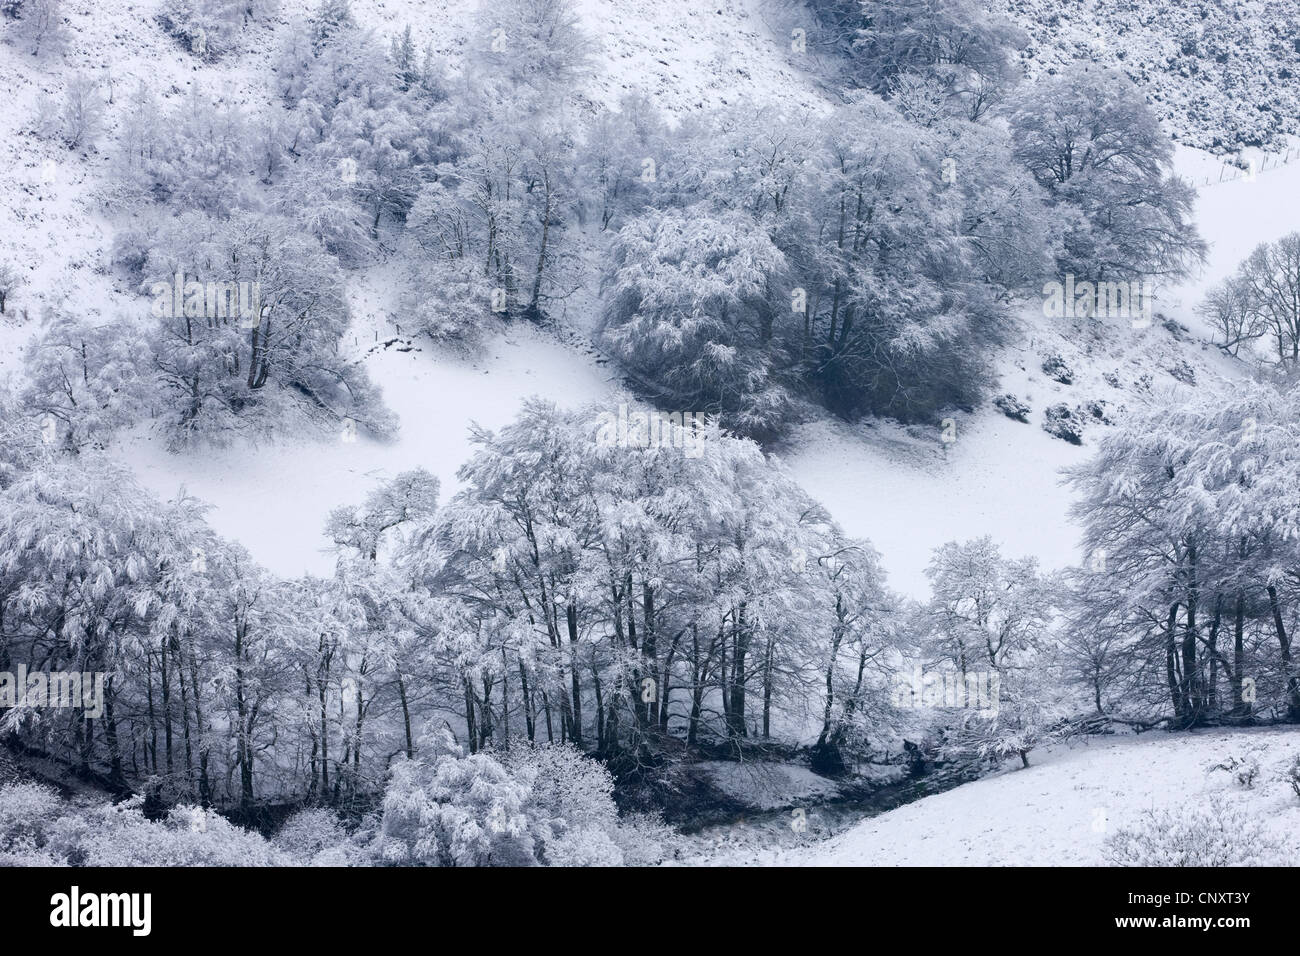 Snow covered trees in The Punchbowl, Exmoor, Somerset, England. Winter (January) 2012. - Stock Image